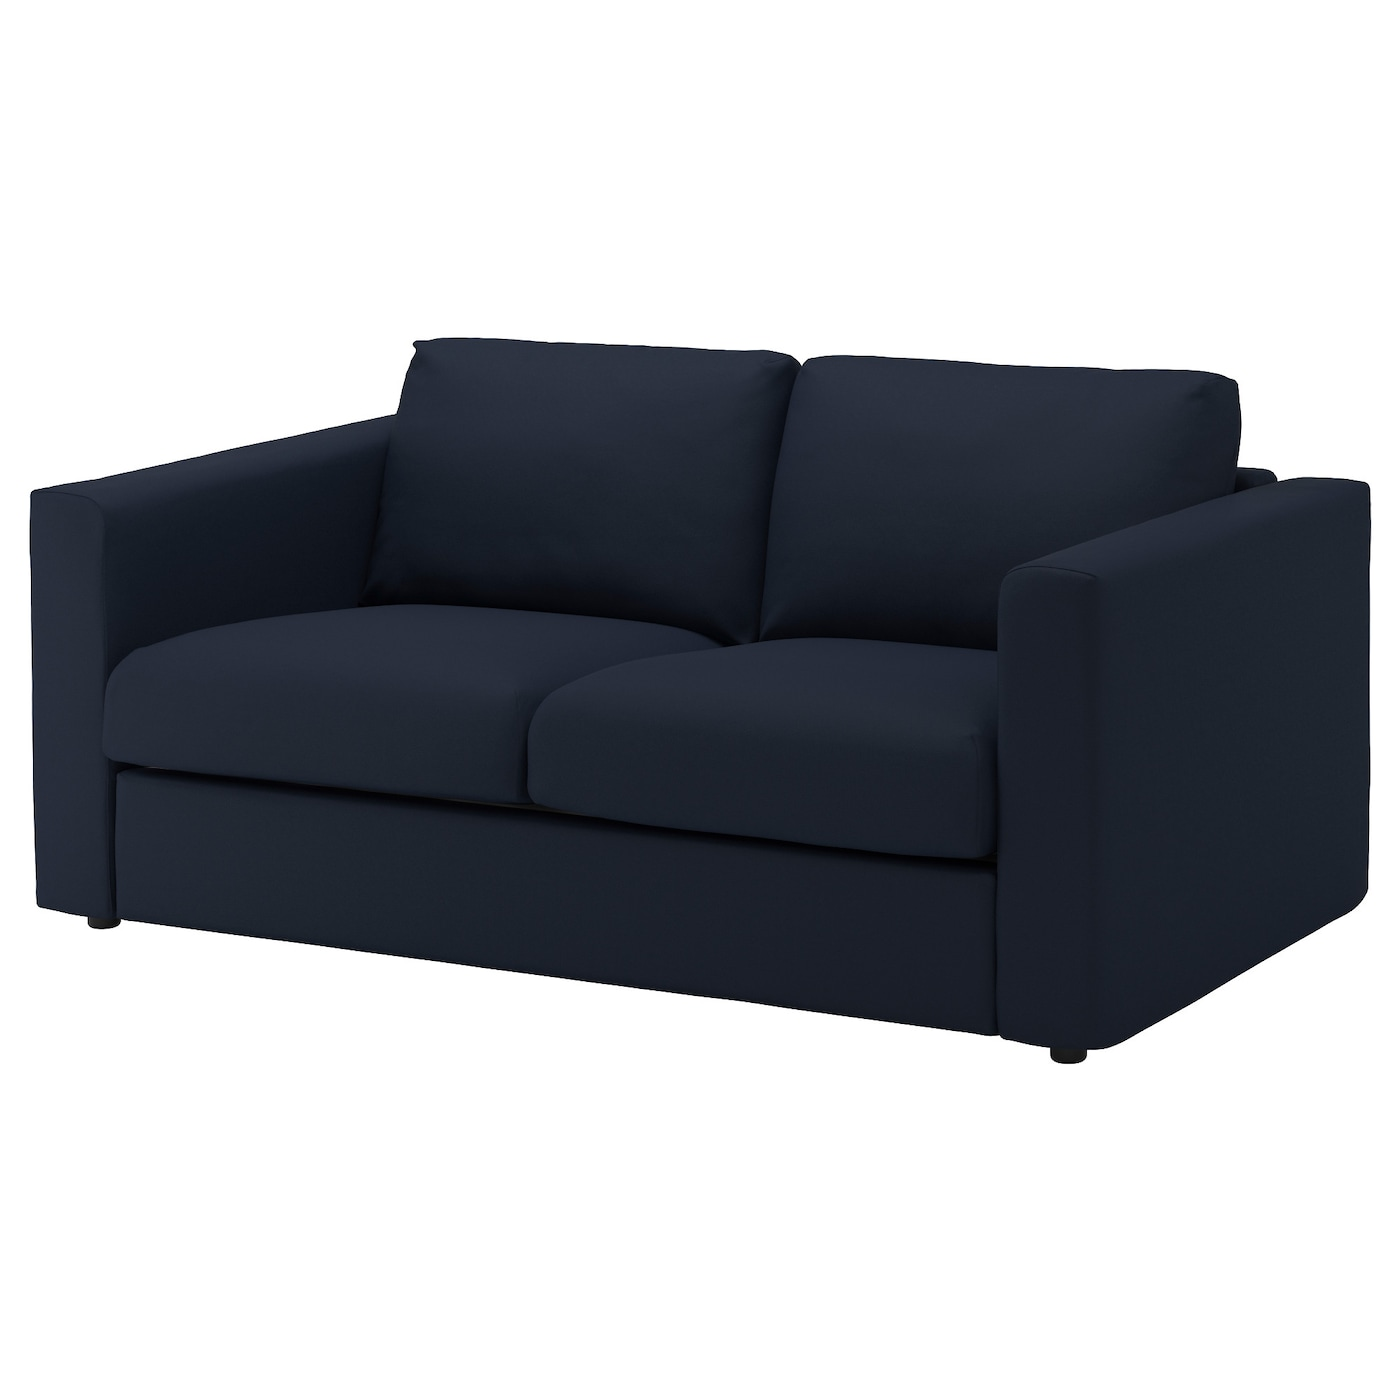 4 seater sofa ikea kivik 4 seat sofa with chaise longue. Black Bedroom Furniture Sets. Home Design Ideas